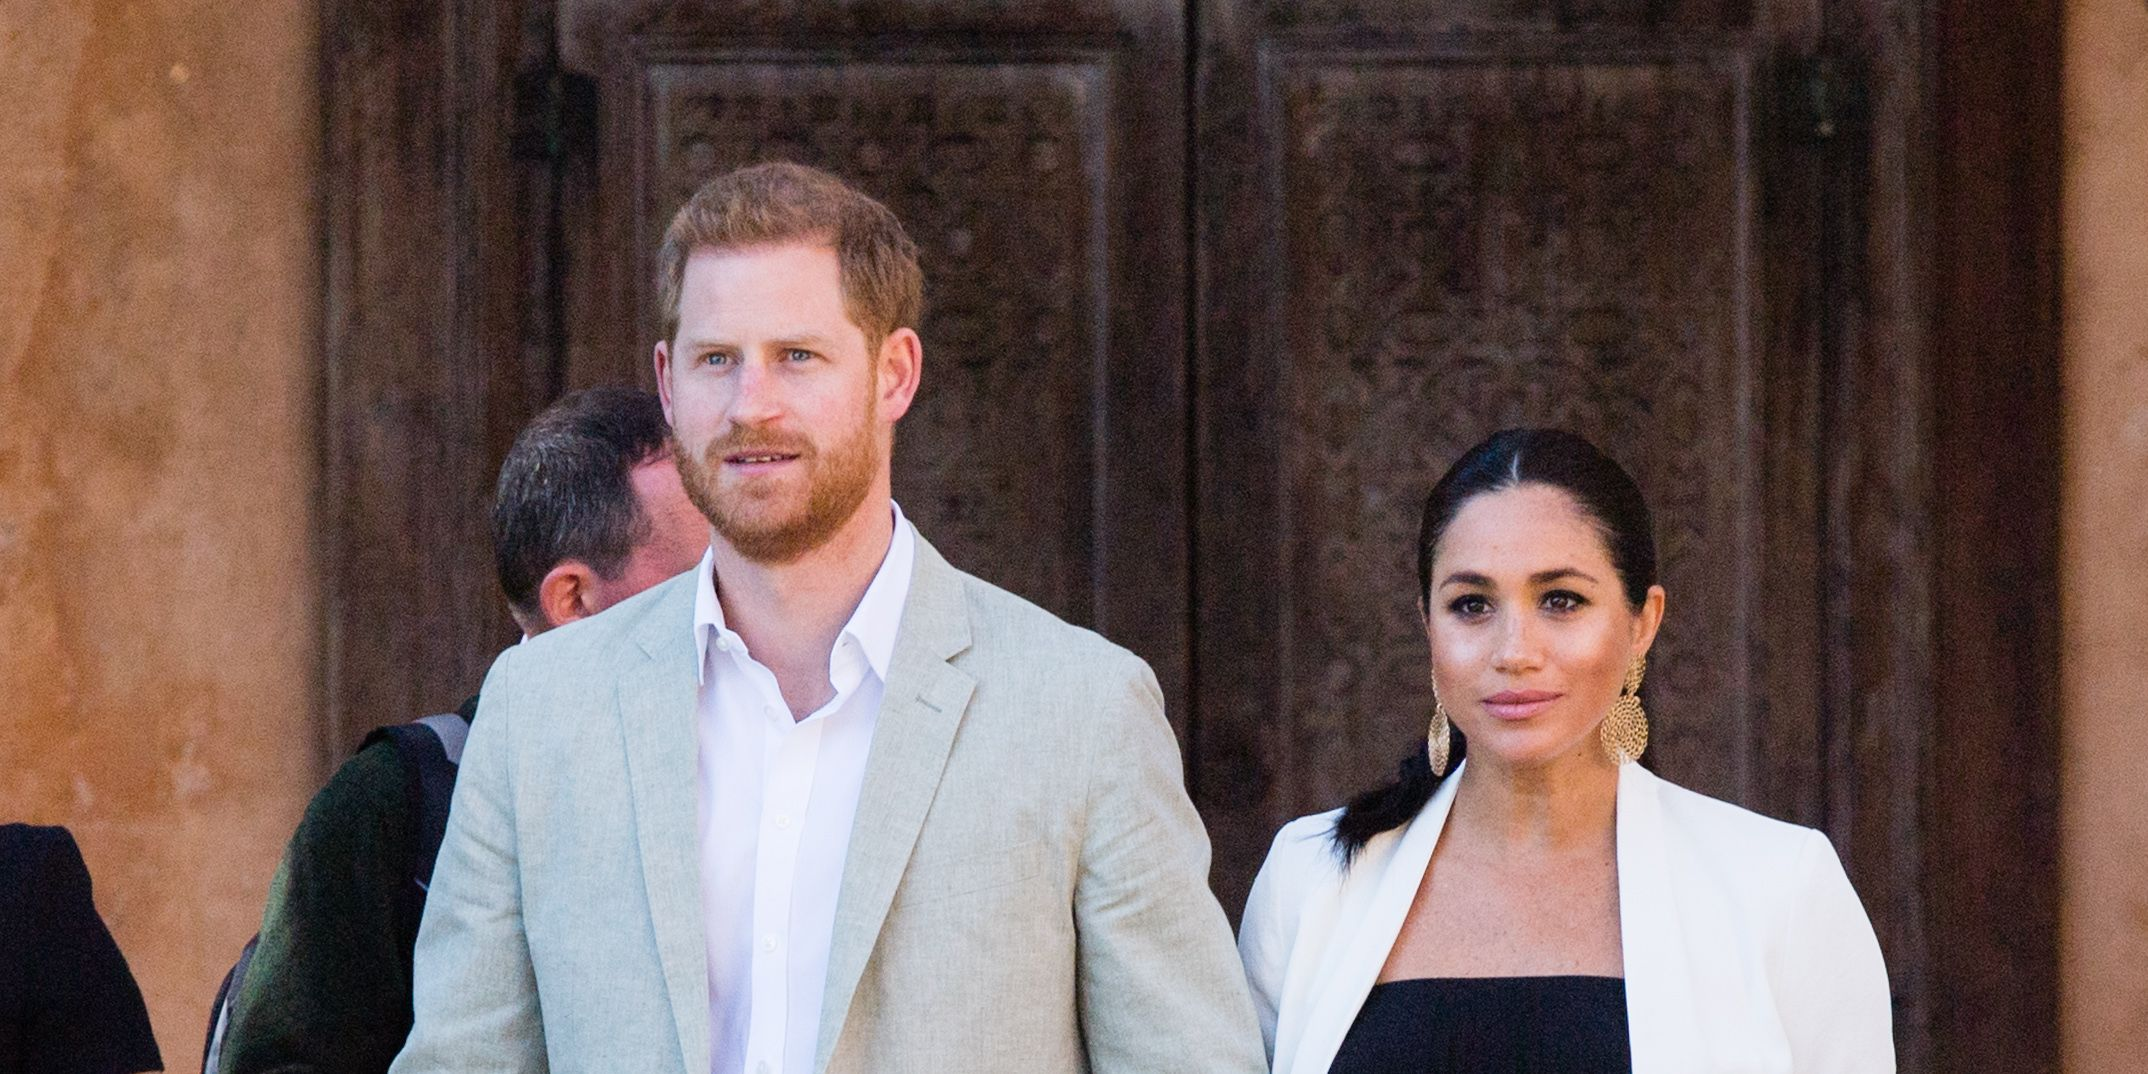 Did Meghan Markle just drop a big hint she may be having twins?